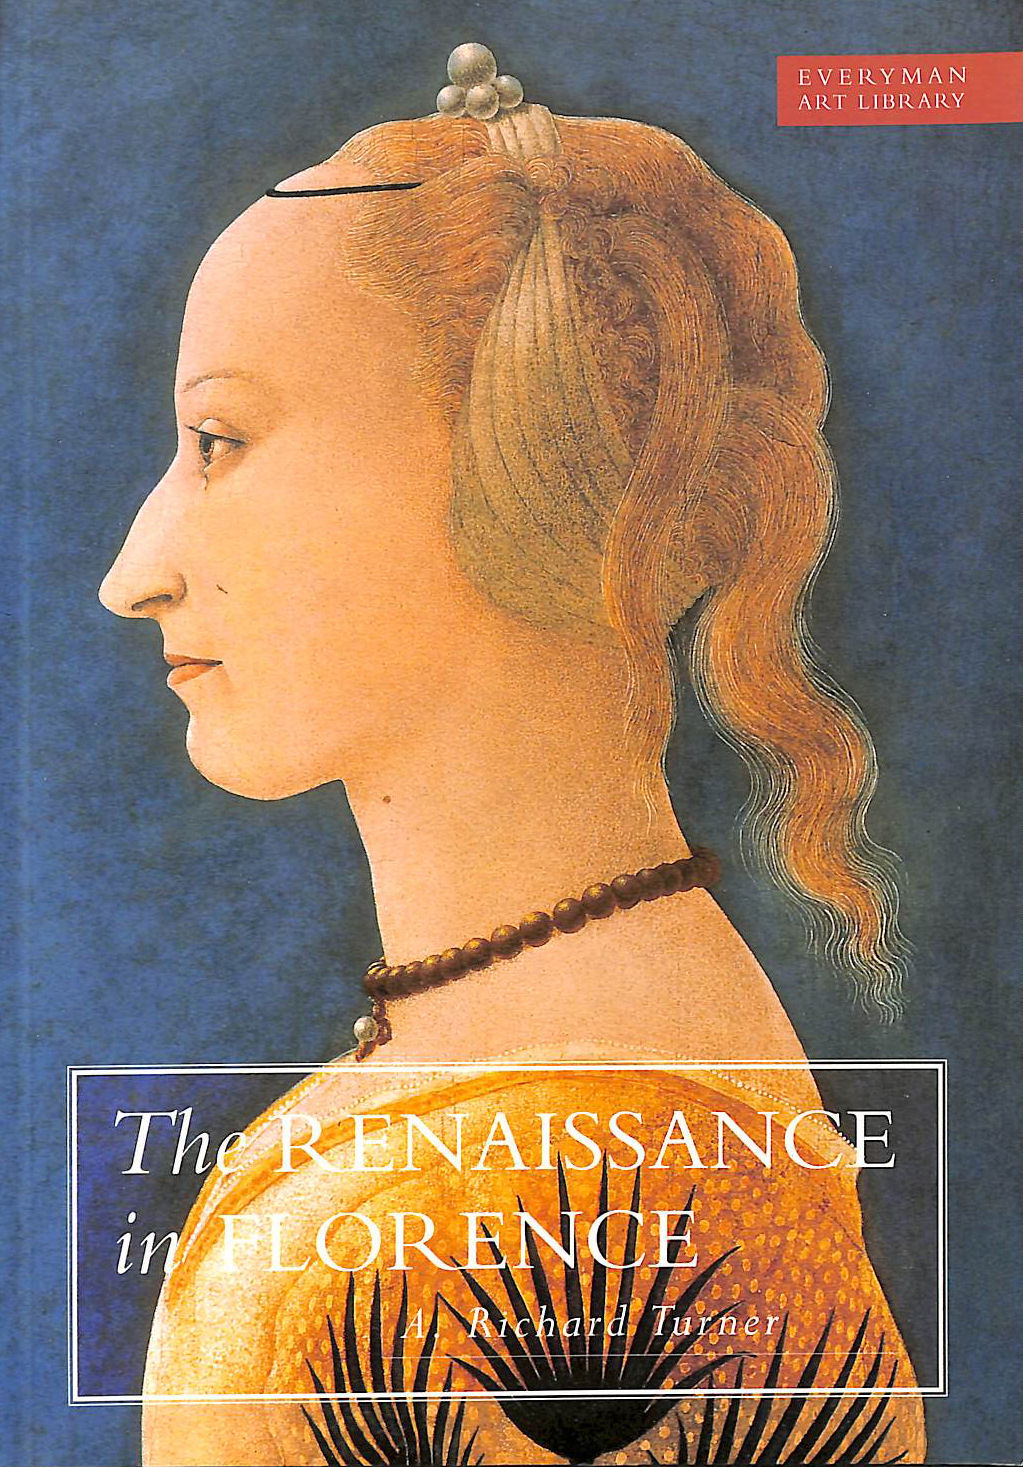 Image for Art Library: Renaissance In Florence (Everyman Art Library)